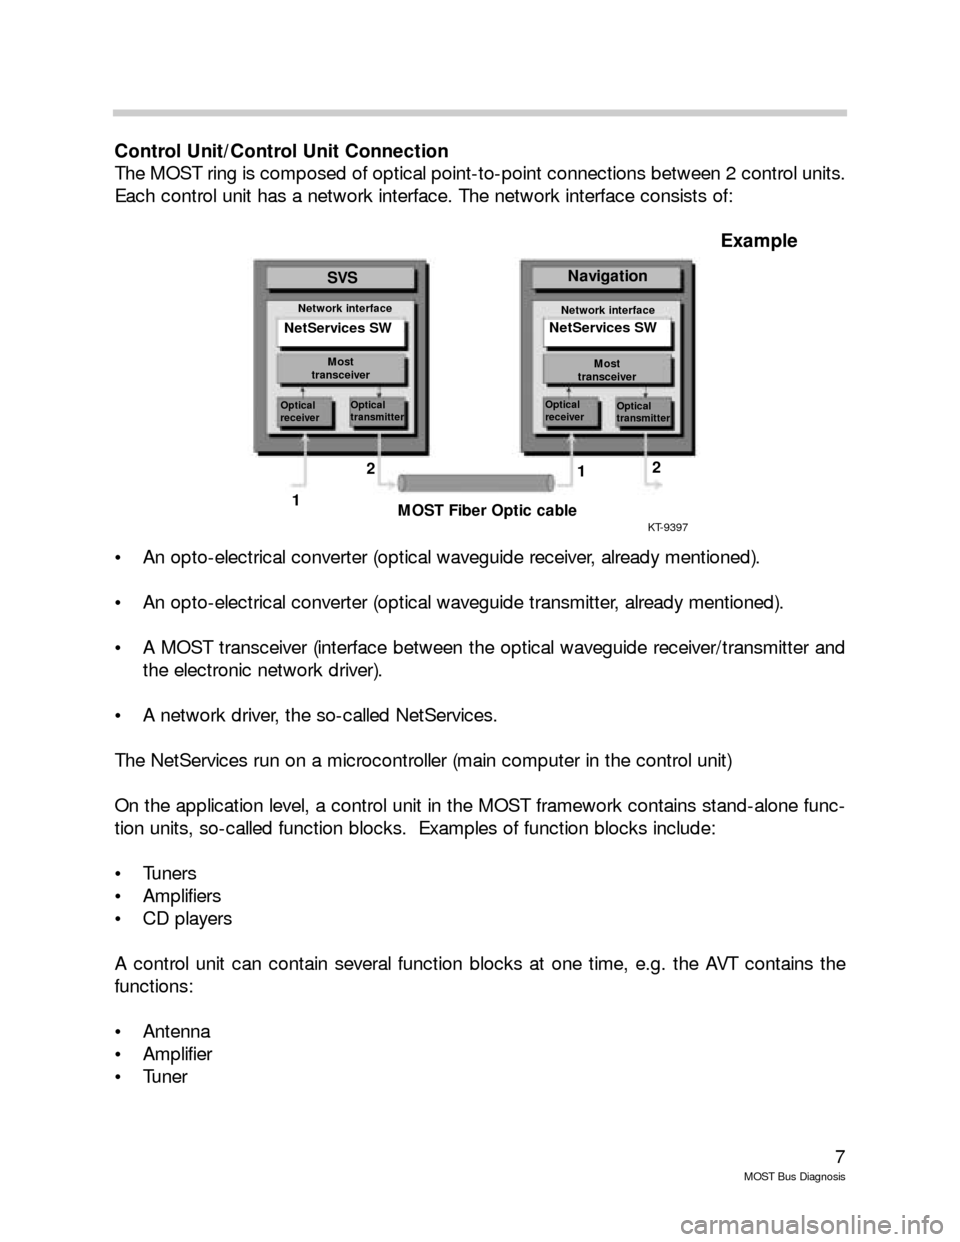 BMW 7 SERIES LONG 2005 E66 MOST Bus Diagnosis Workshop Manual, Page 7